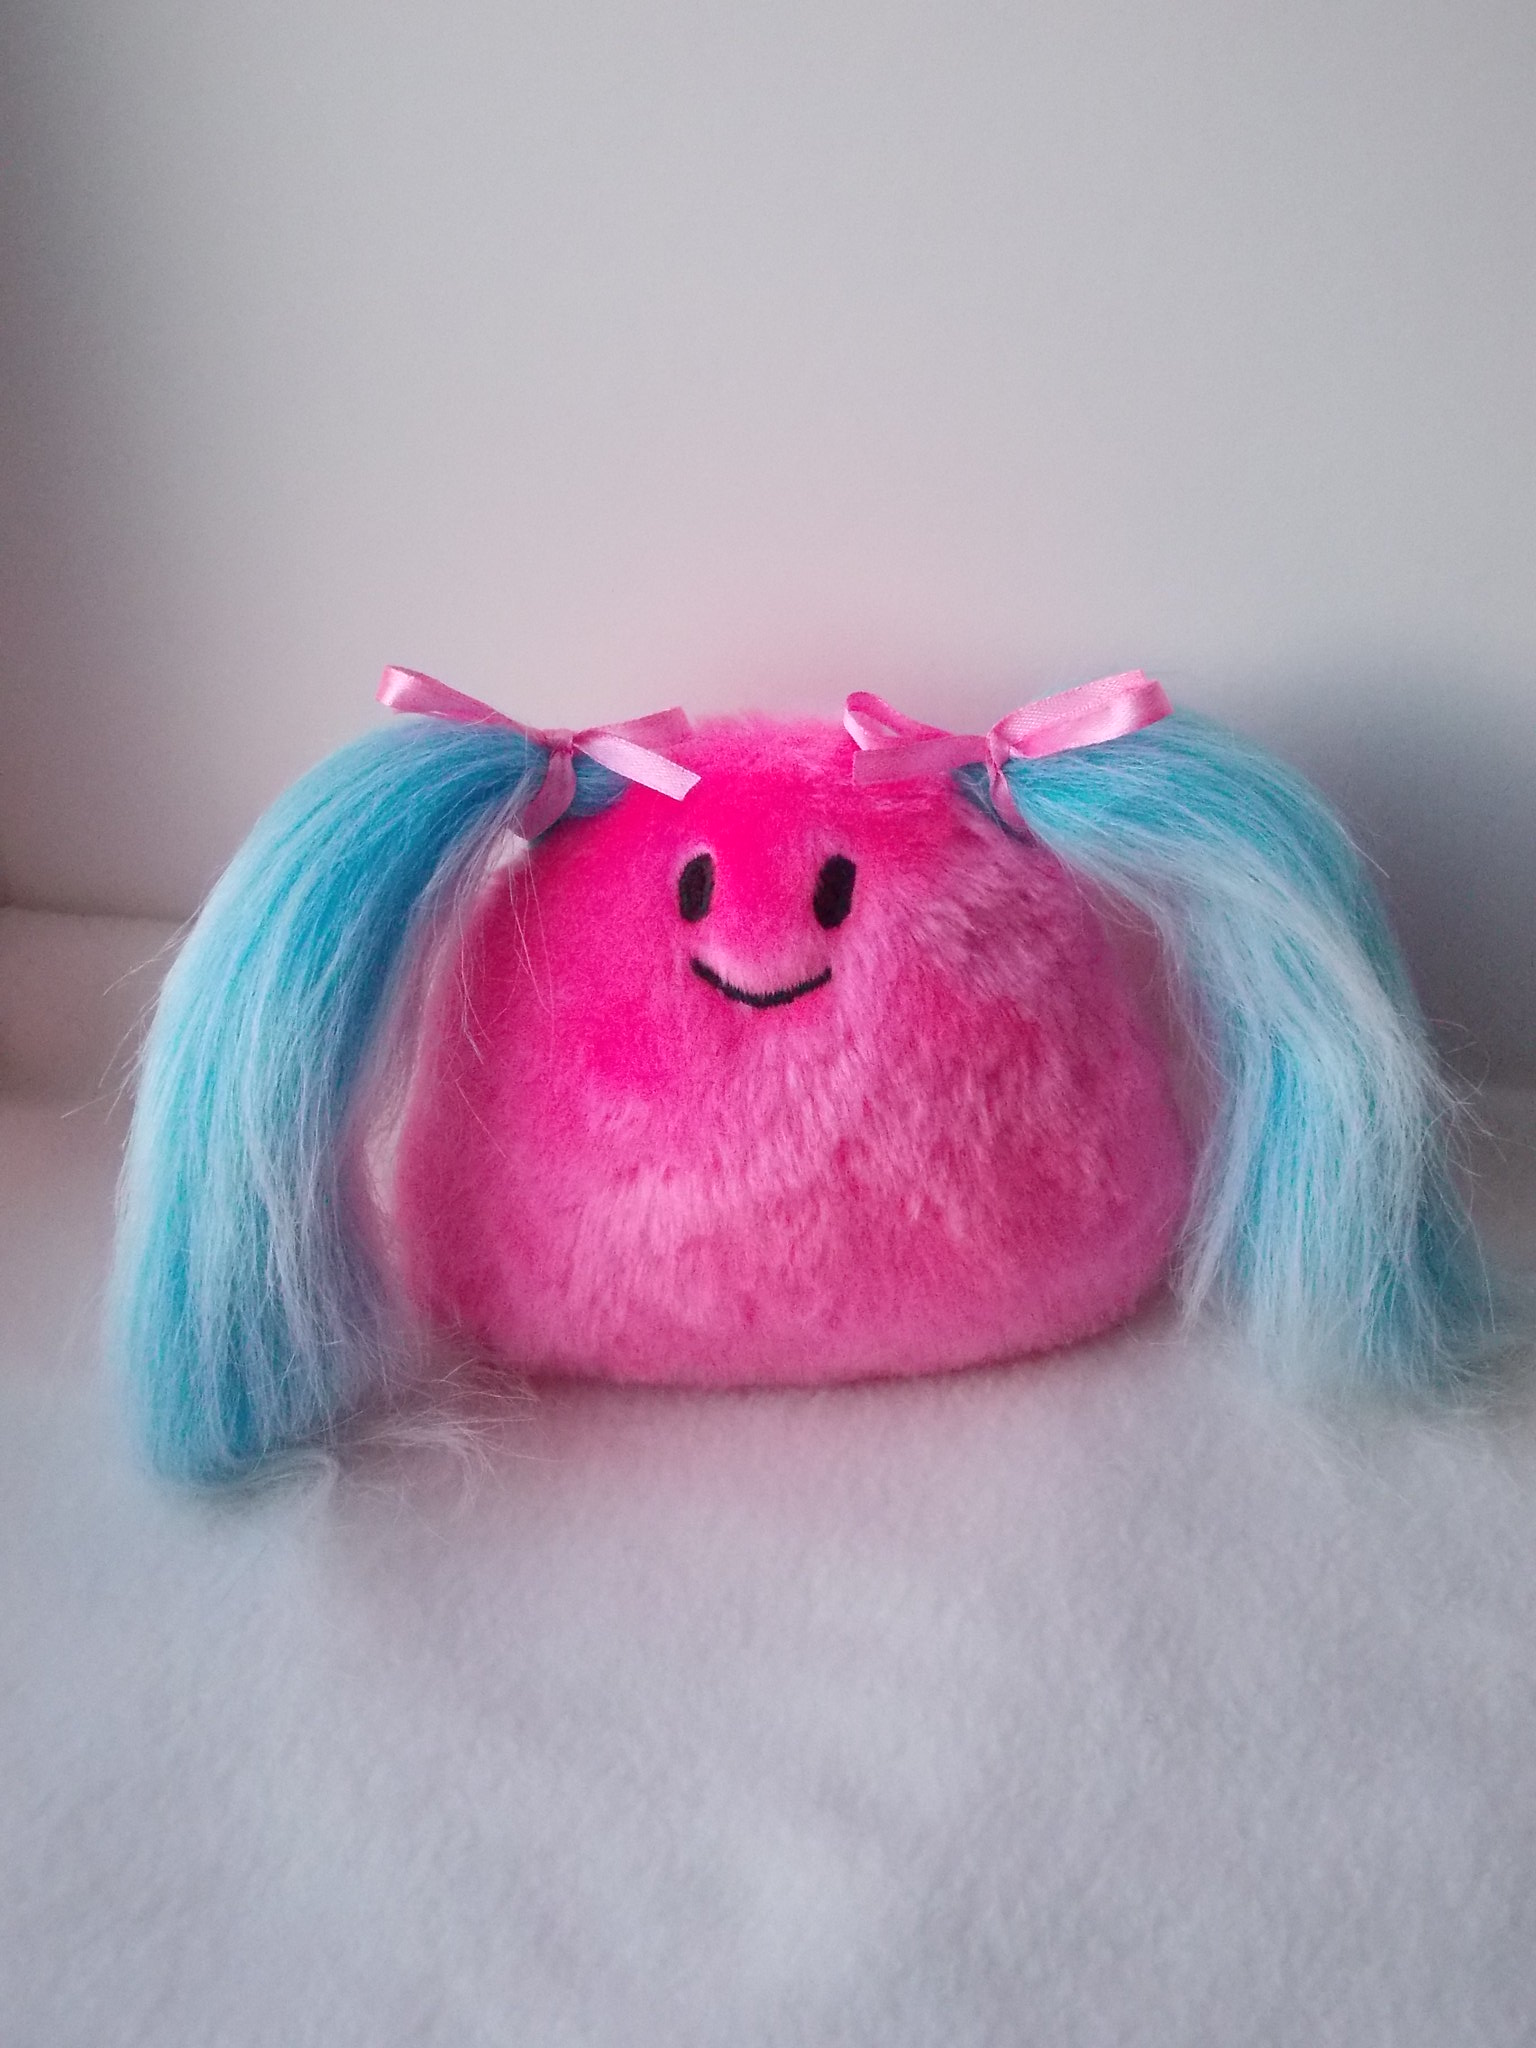 Cute toy, cute monster, kawaii monster, kawaii princess, pink blue toy, blue hair toy, blue hair princess, warm fuzzies 35